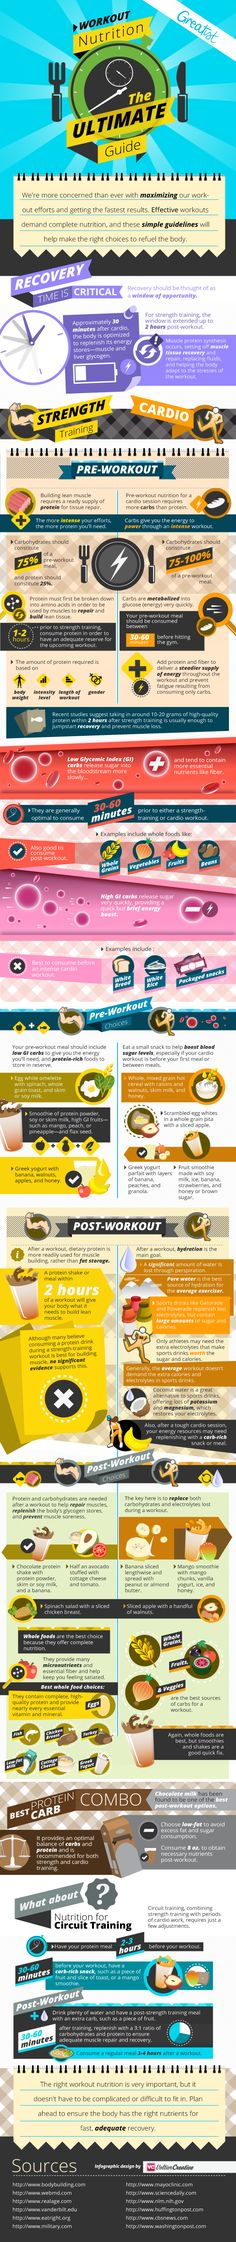 <p>We're more concerned than ever with maximizing our workout efforts and getting the fastest results. Effective workouts demand complete nutrition, and these simple guidelines will help make the right choices to refuel the body.</p> http://greatist.com/health/complete-guide-workout-nutrition-infographic